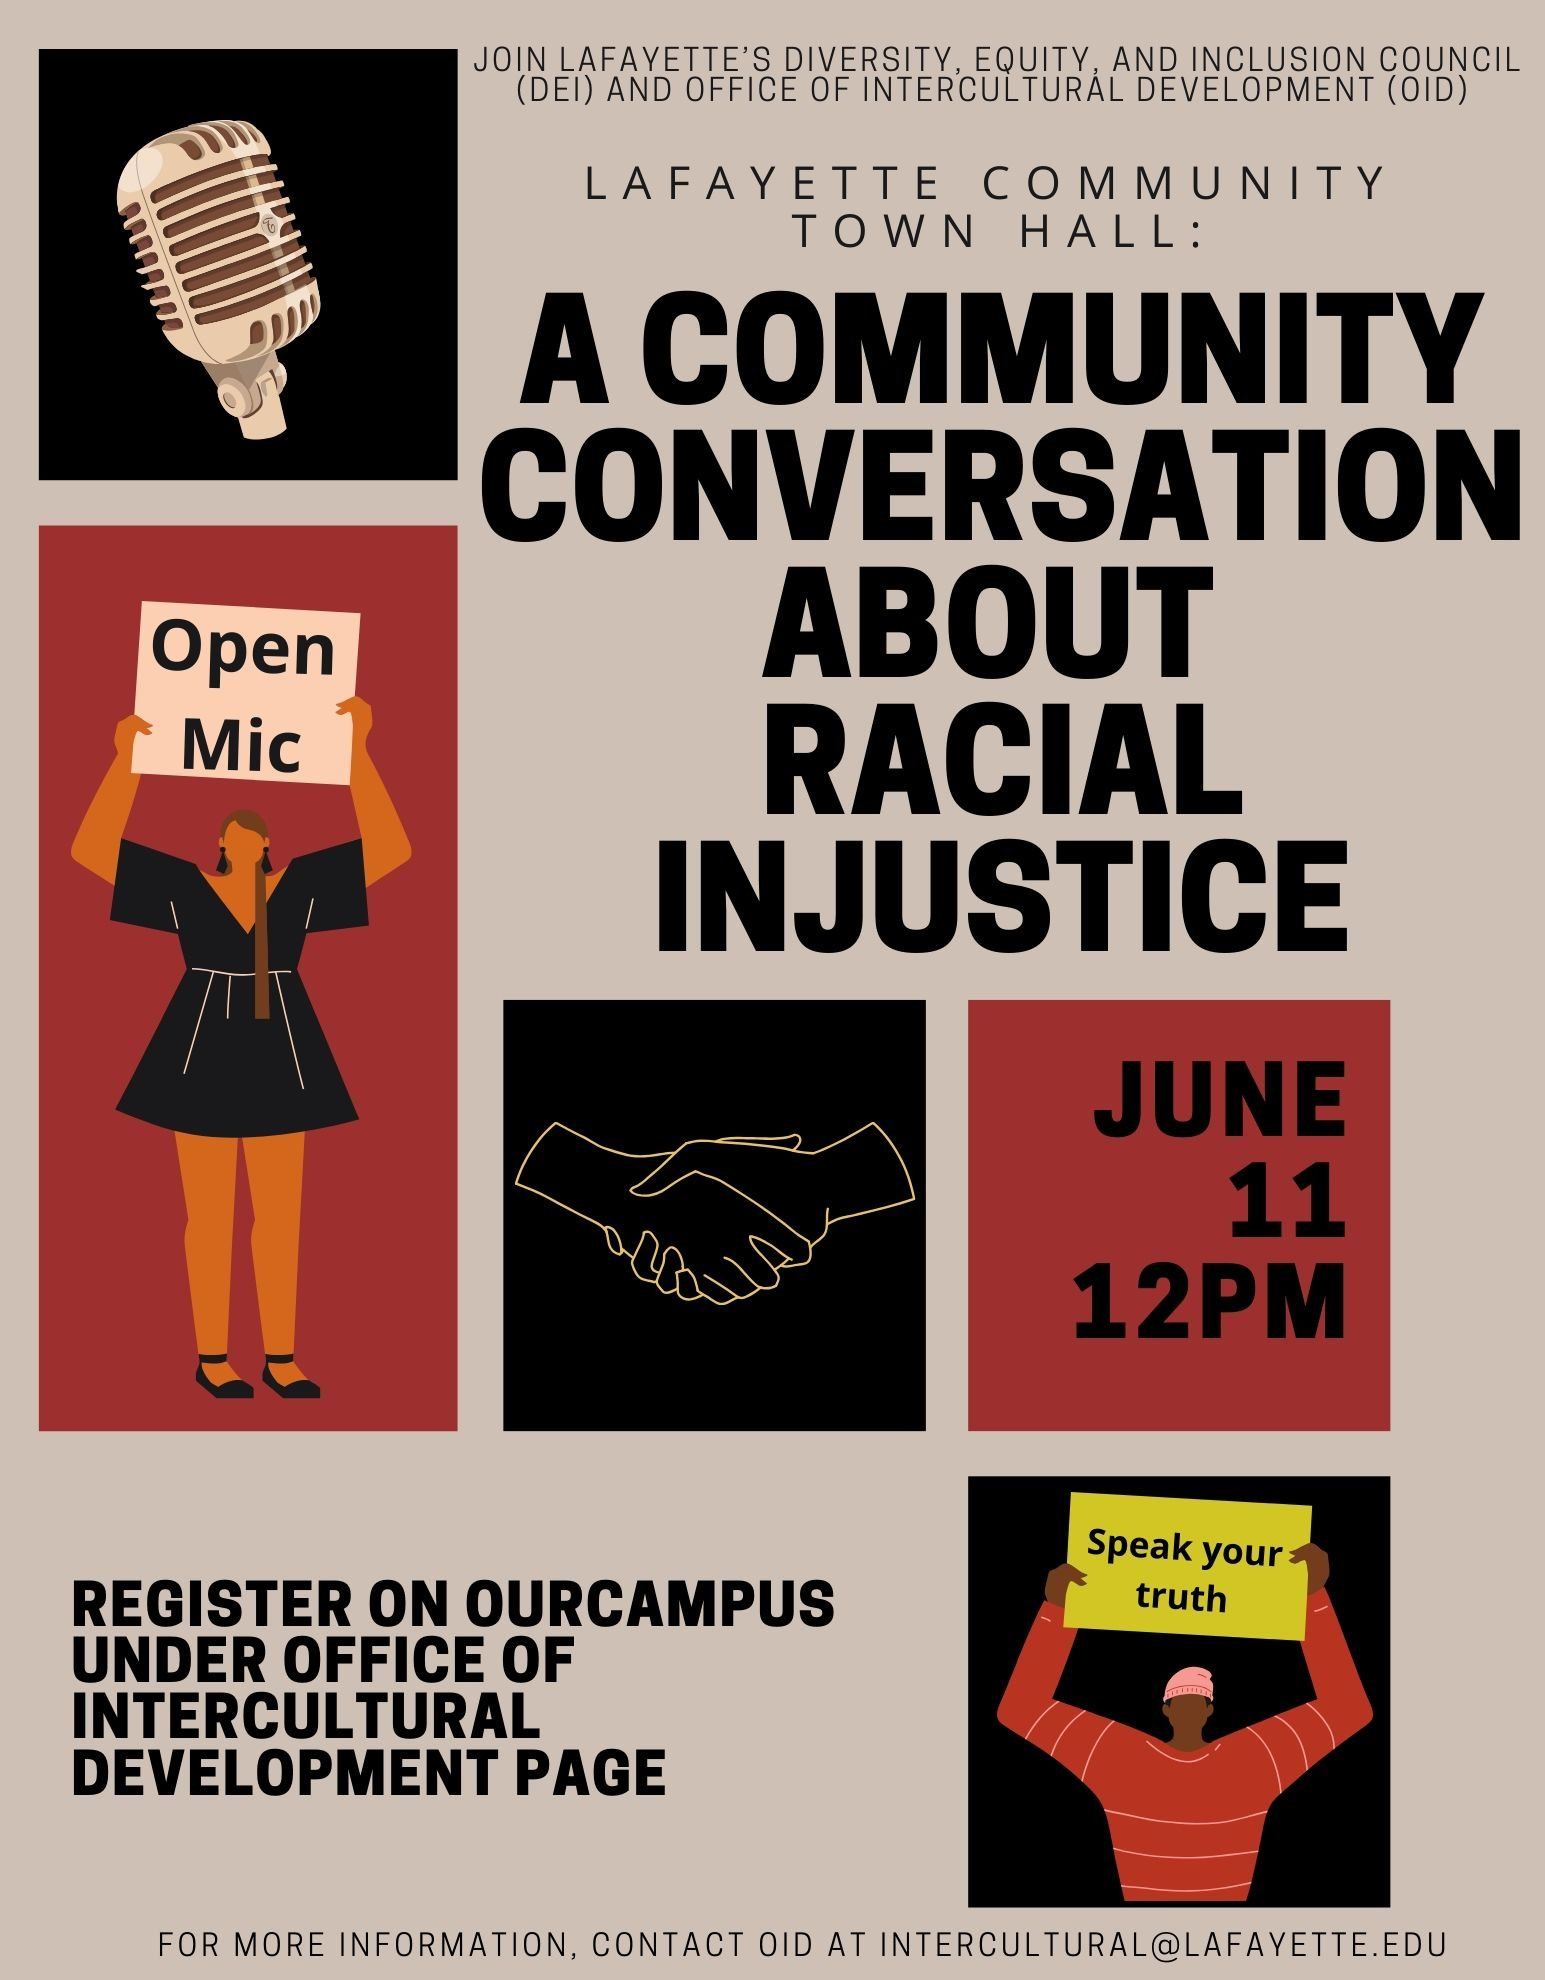 Town Hall: A Community Conversation About Racial Injustice